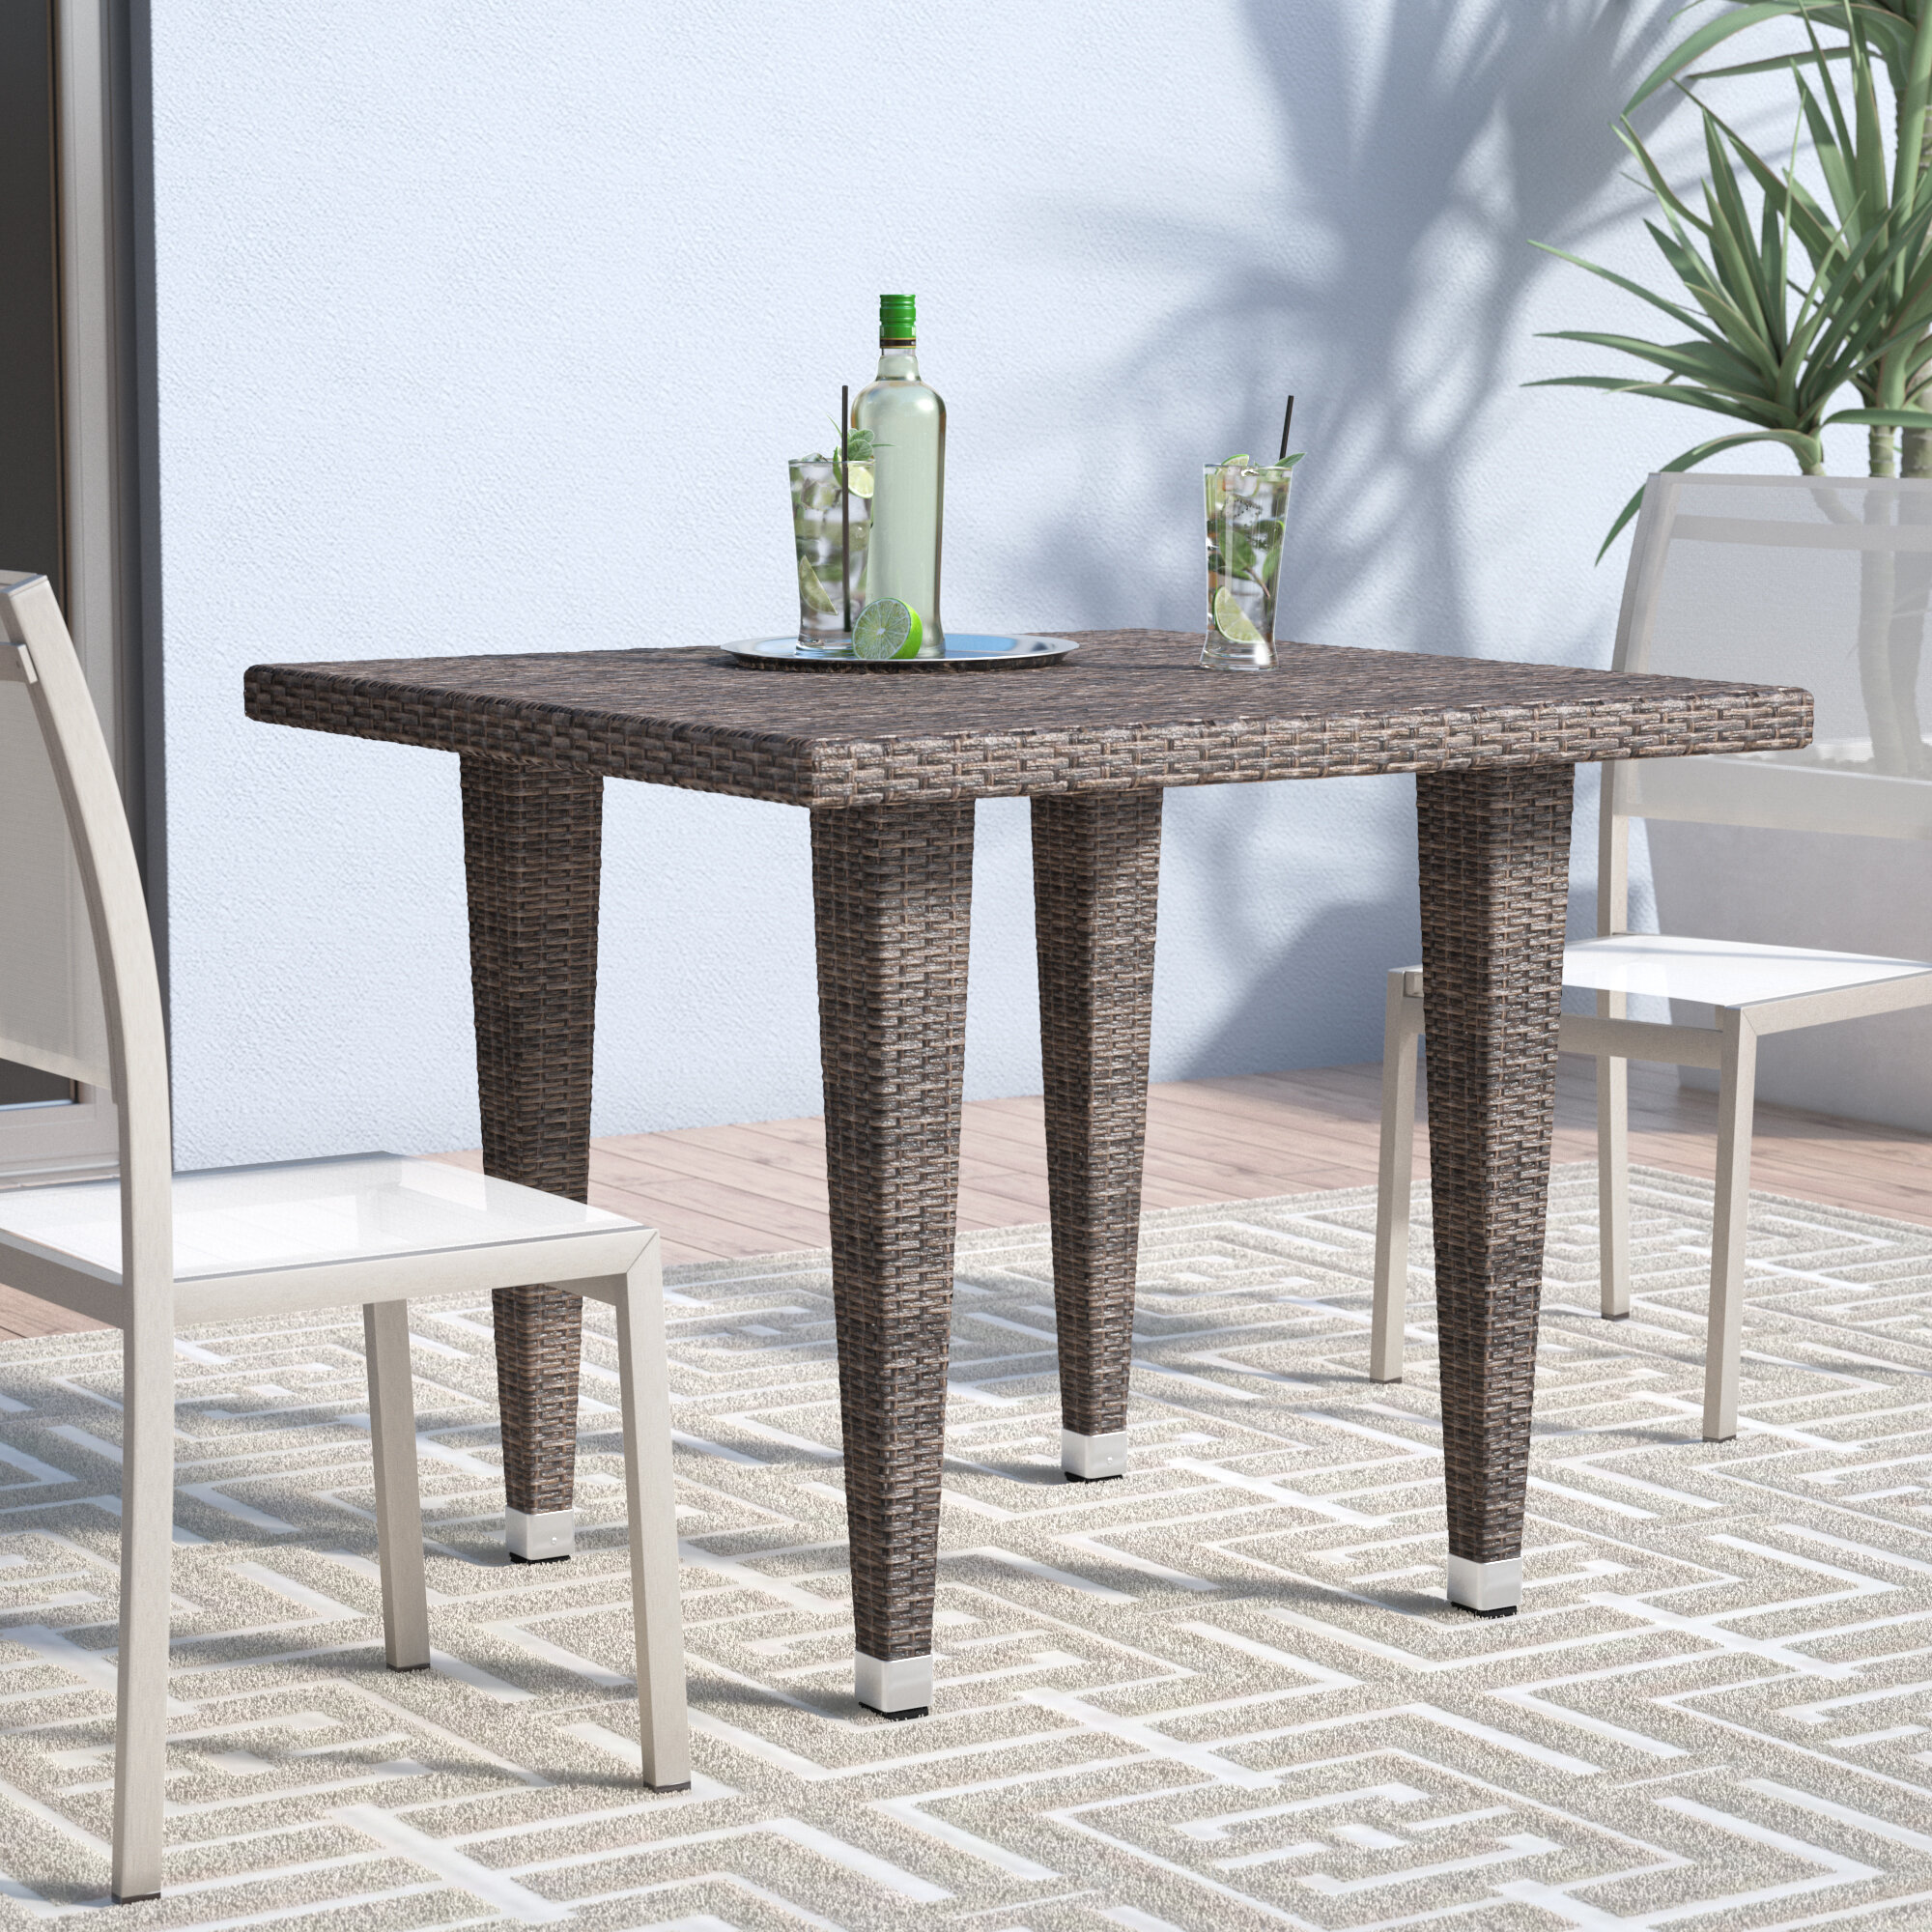 Discussion on this topic: Brayden Studio Kesler Contemporary 5 Piece Dining , brayden-studio-kesler-contemporary-5-piece-dining/